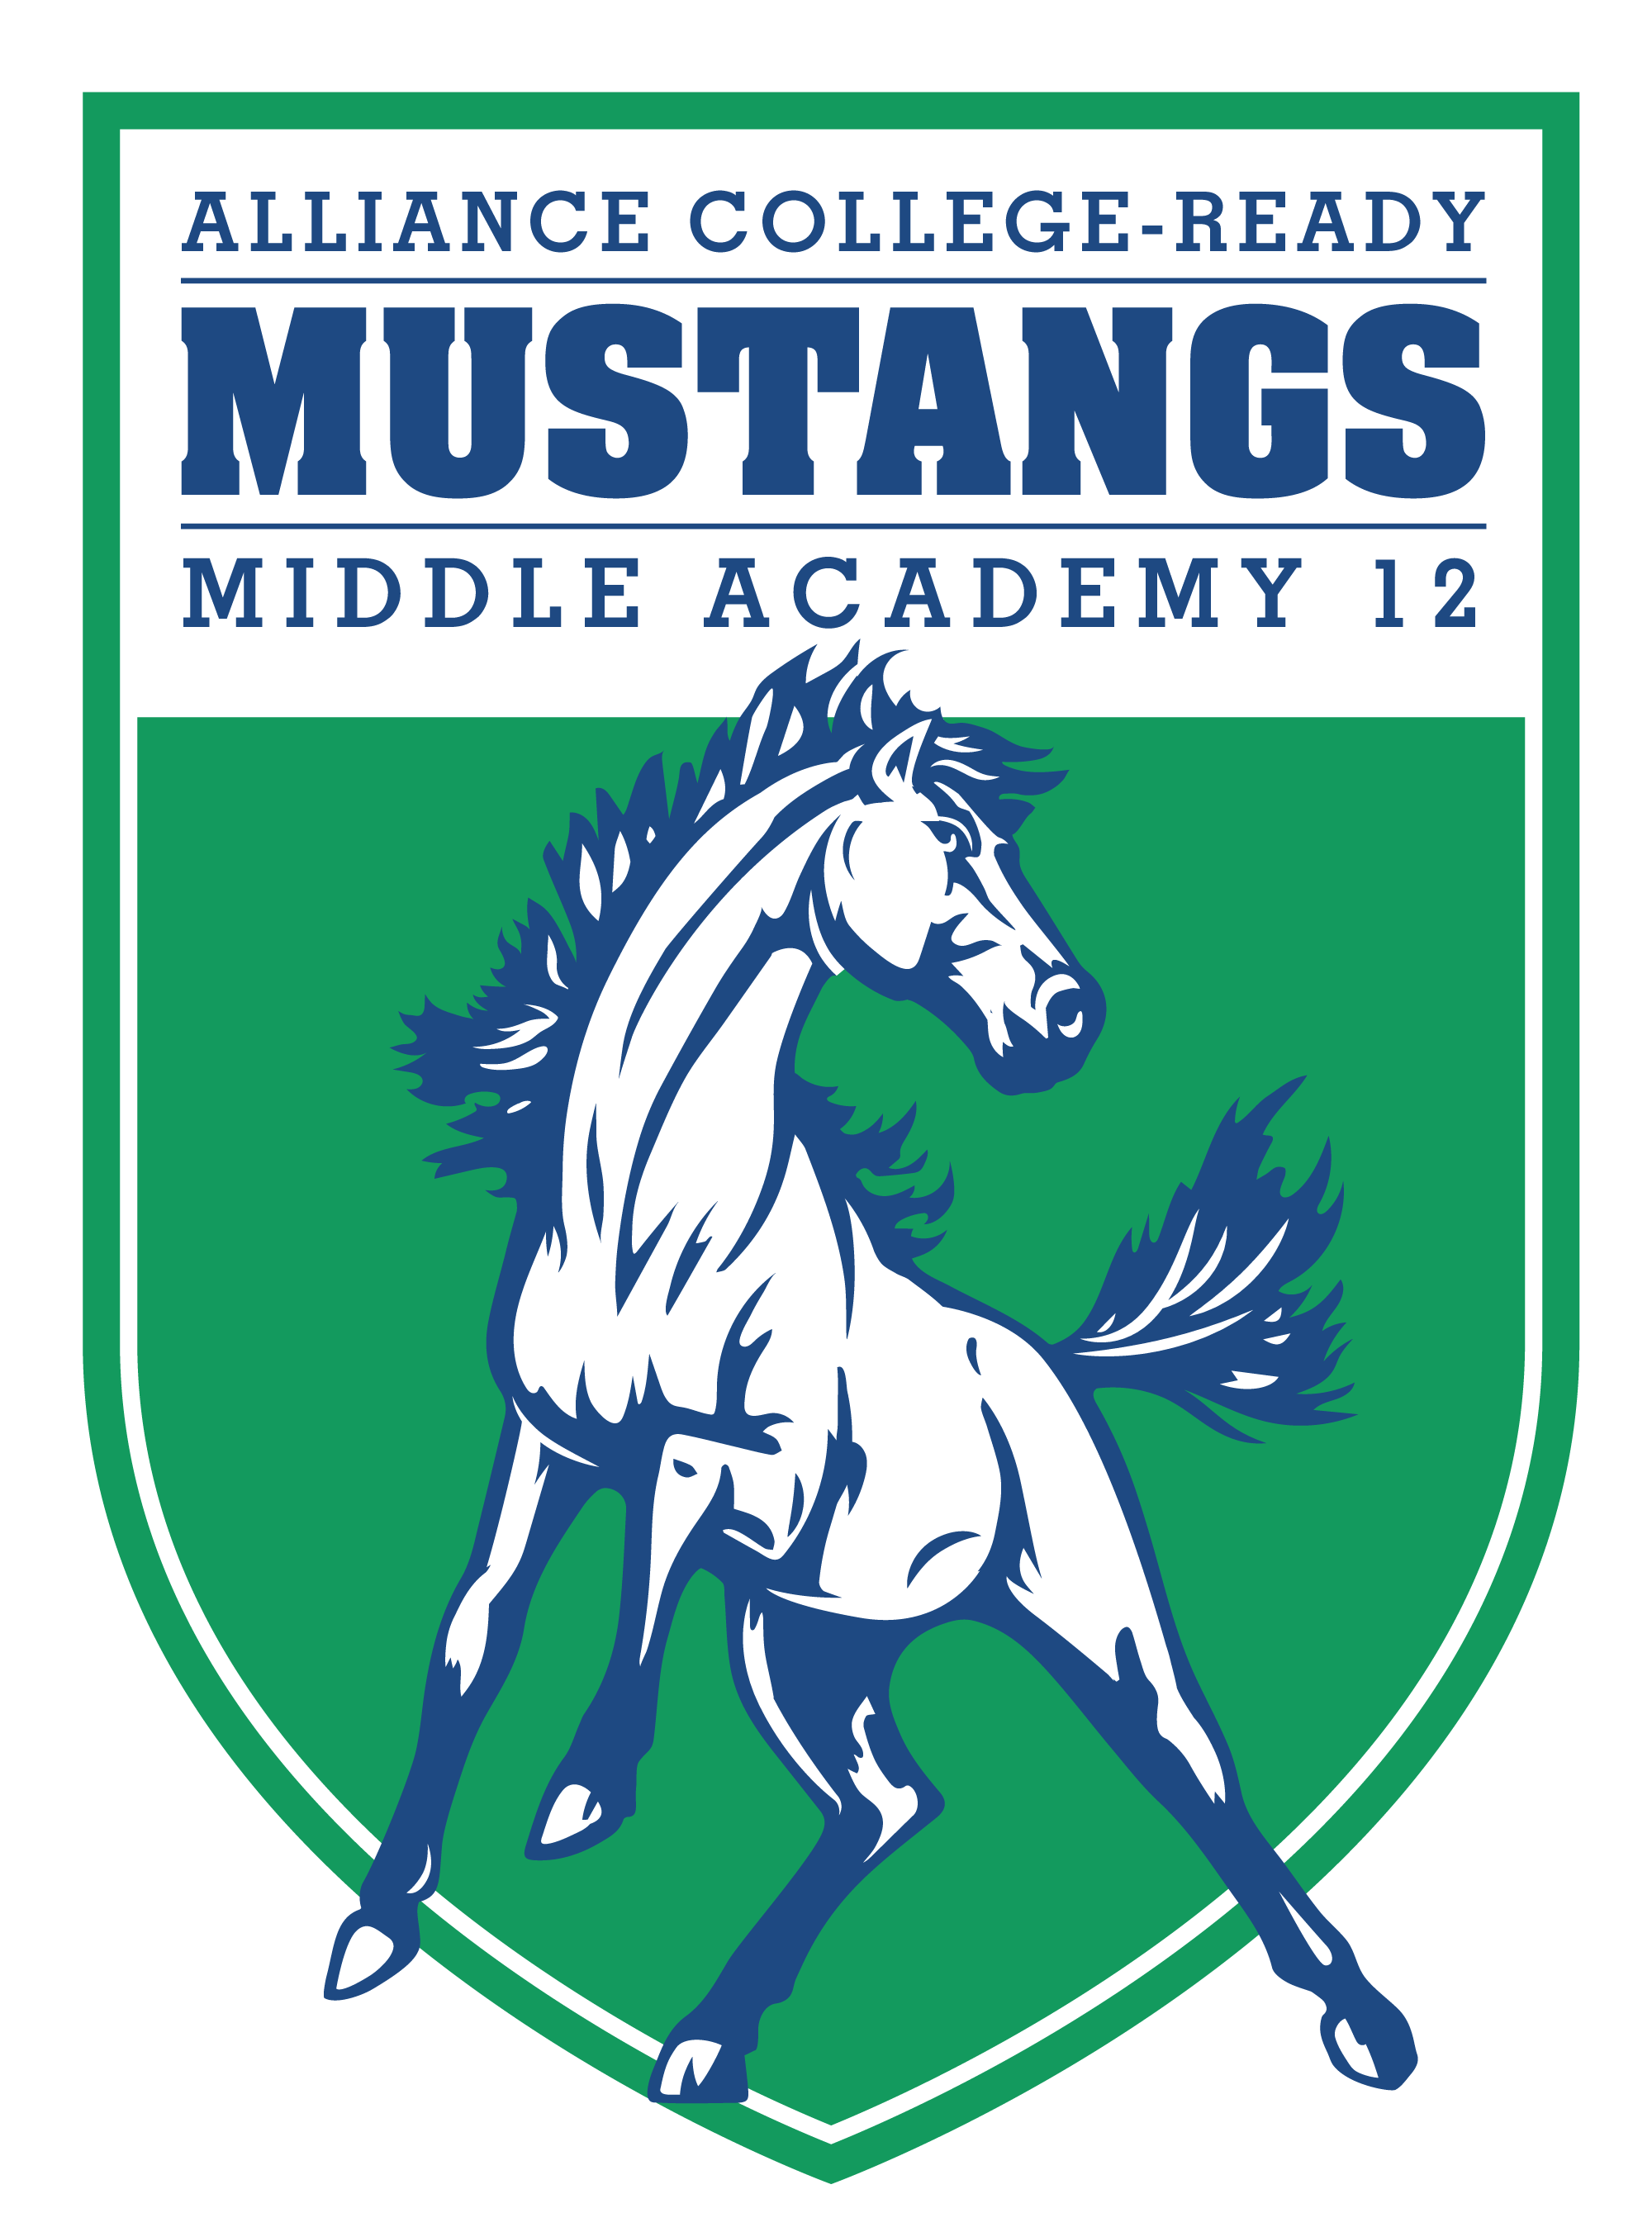 Alliance college ready academy. Mustang clipart central middle school